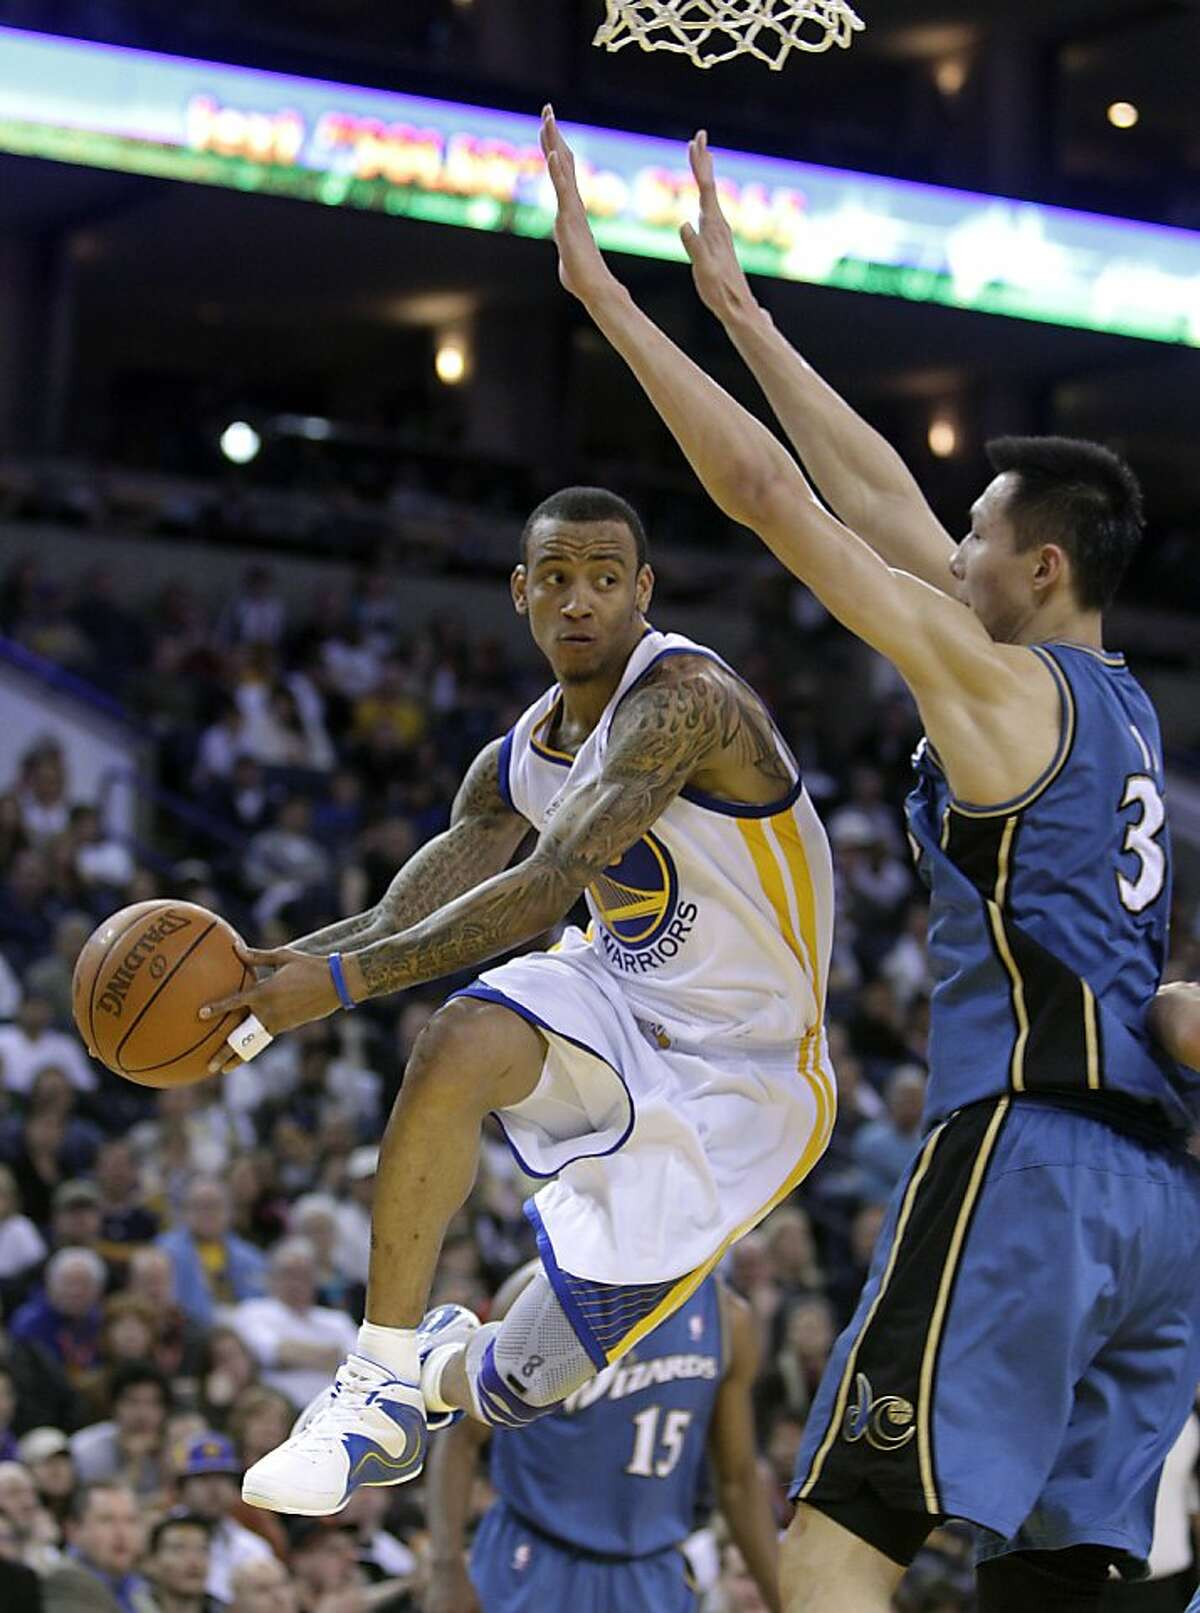 Golden State Warriors' Monta Ellis, left, looks to pass away from Washington Wizards' Yi Jianlian, of China, during the first half of an NBA basketball game, Sunday, March 27, 2011, in Oakland, Calif.